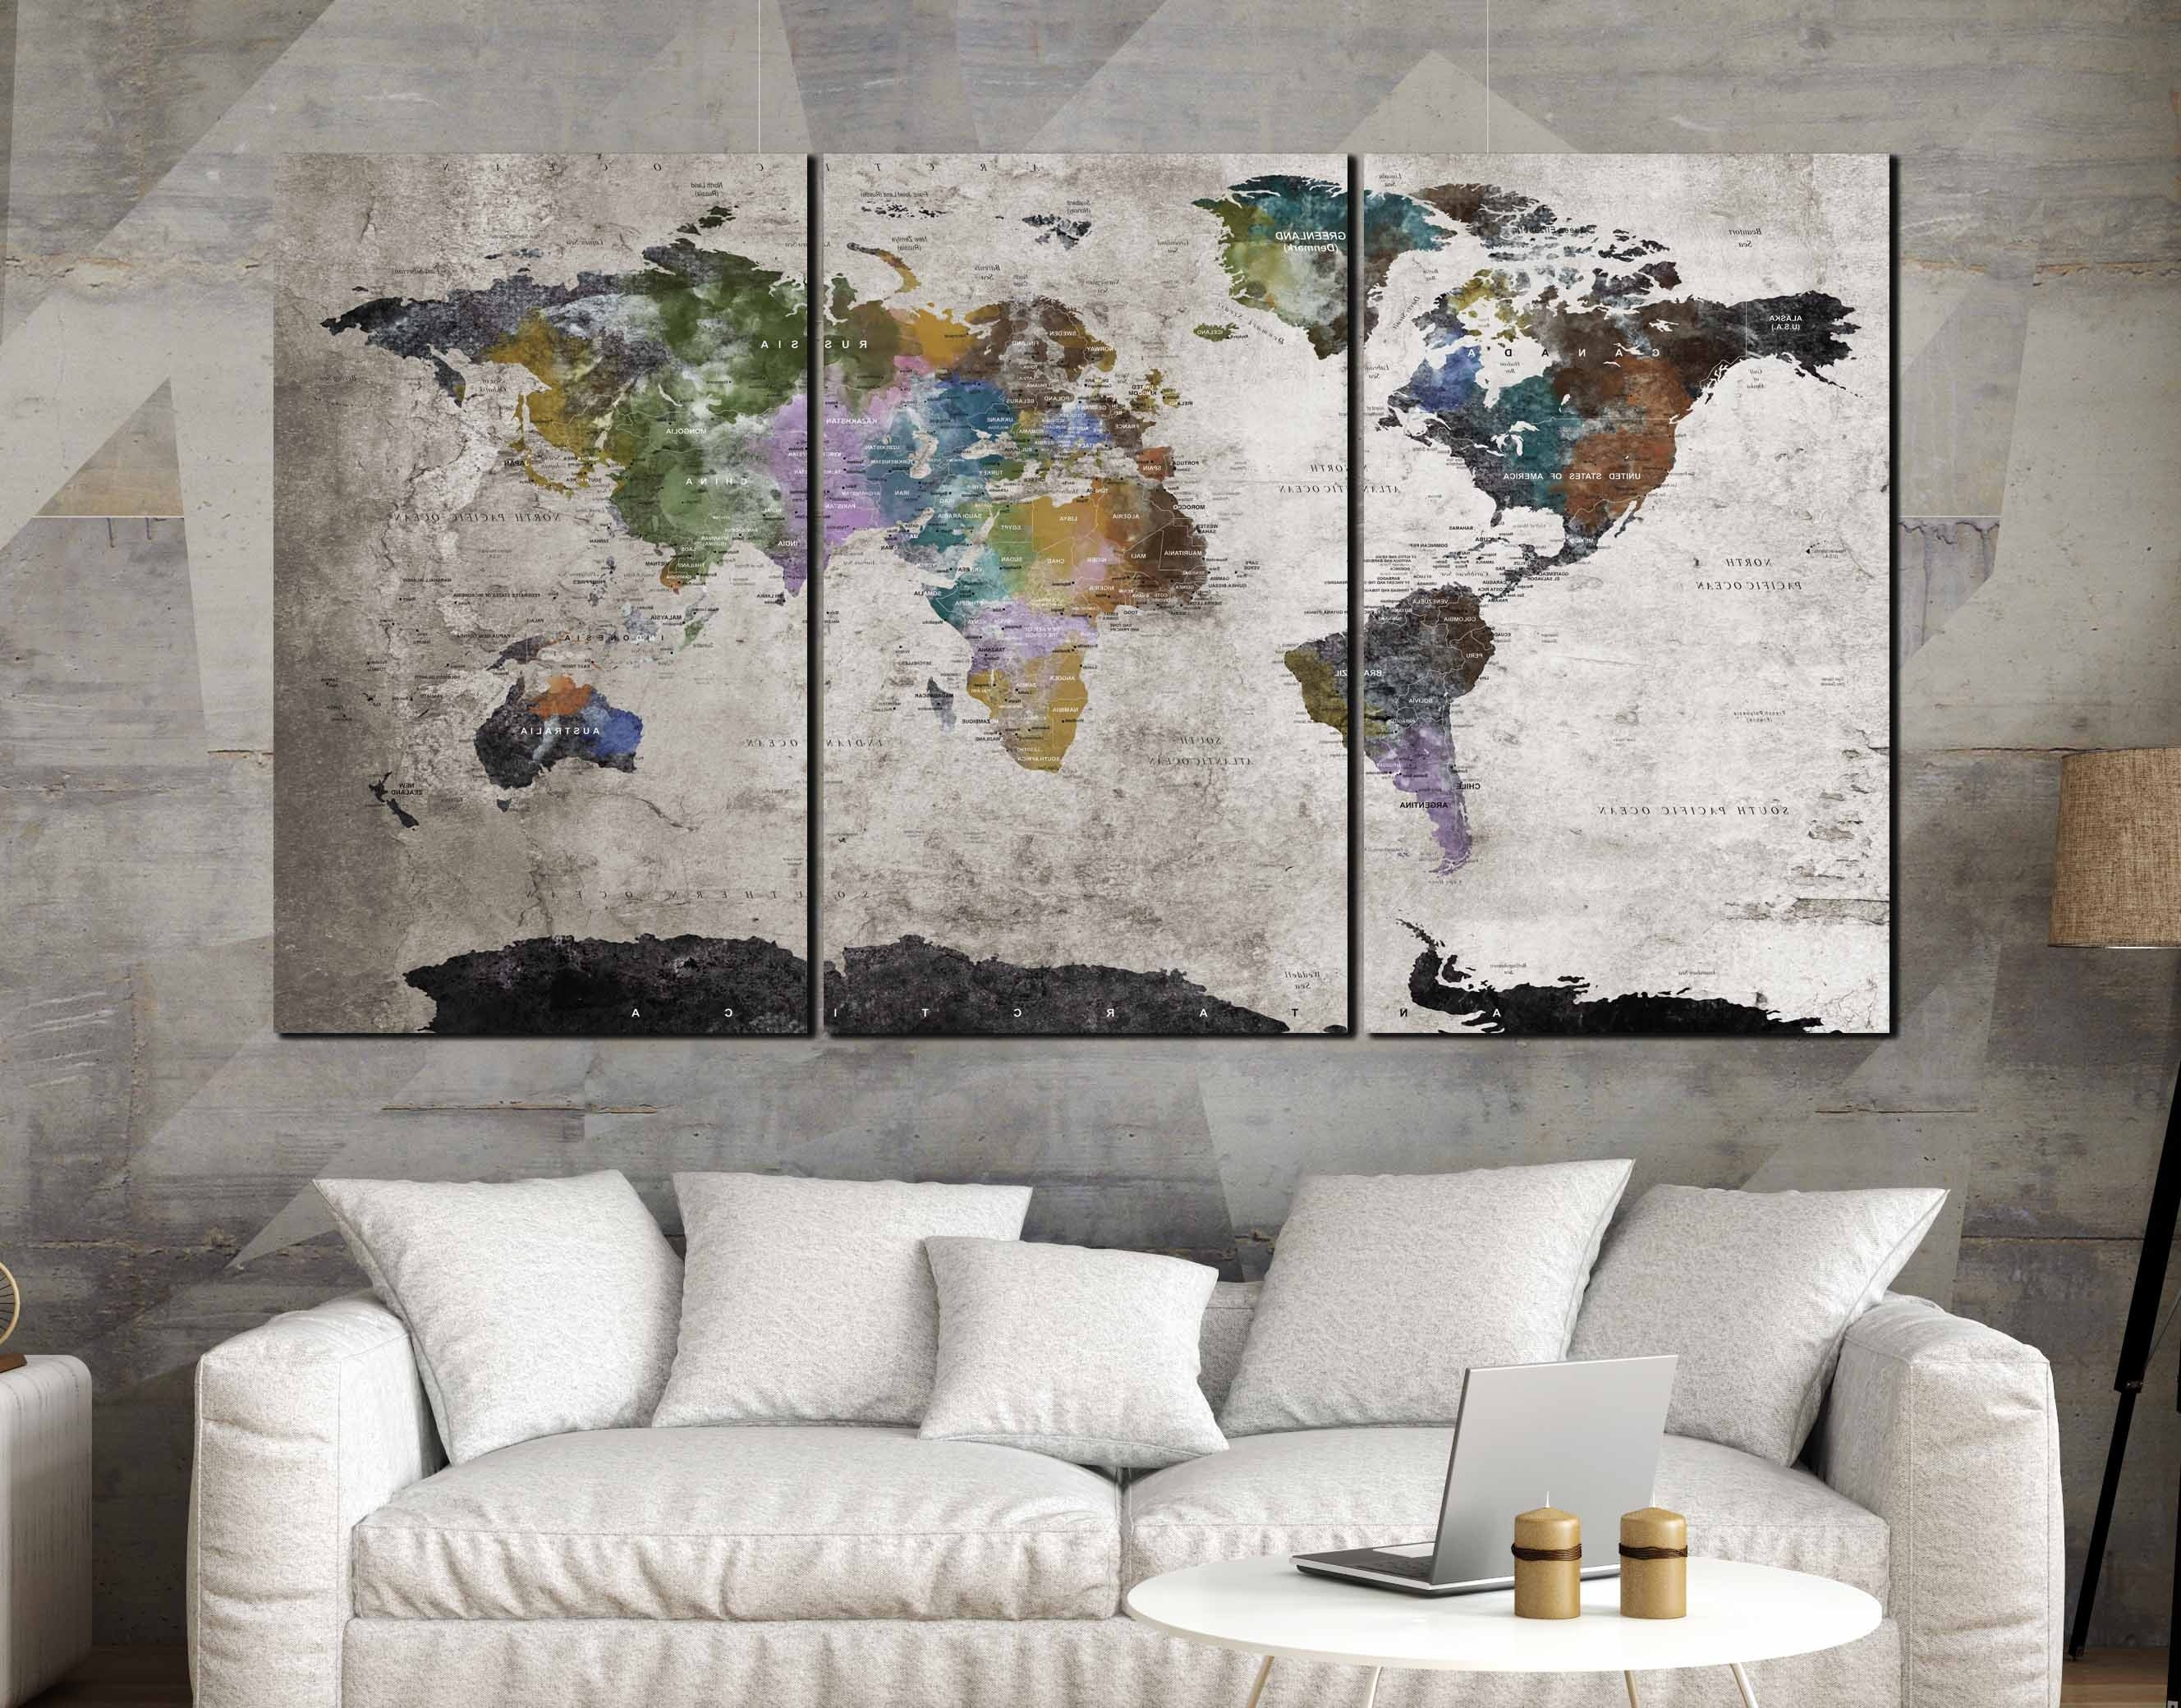 Highly Detailed World Map Wall Art,large World Map, World Map Canvas Pertaining To Latest Wall Art Map Of World (View 4 of 15)